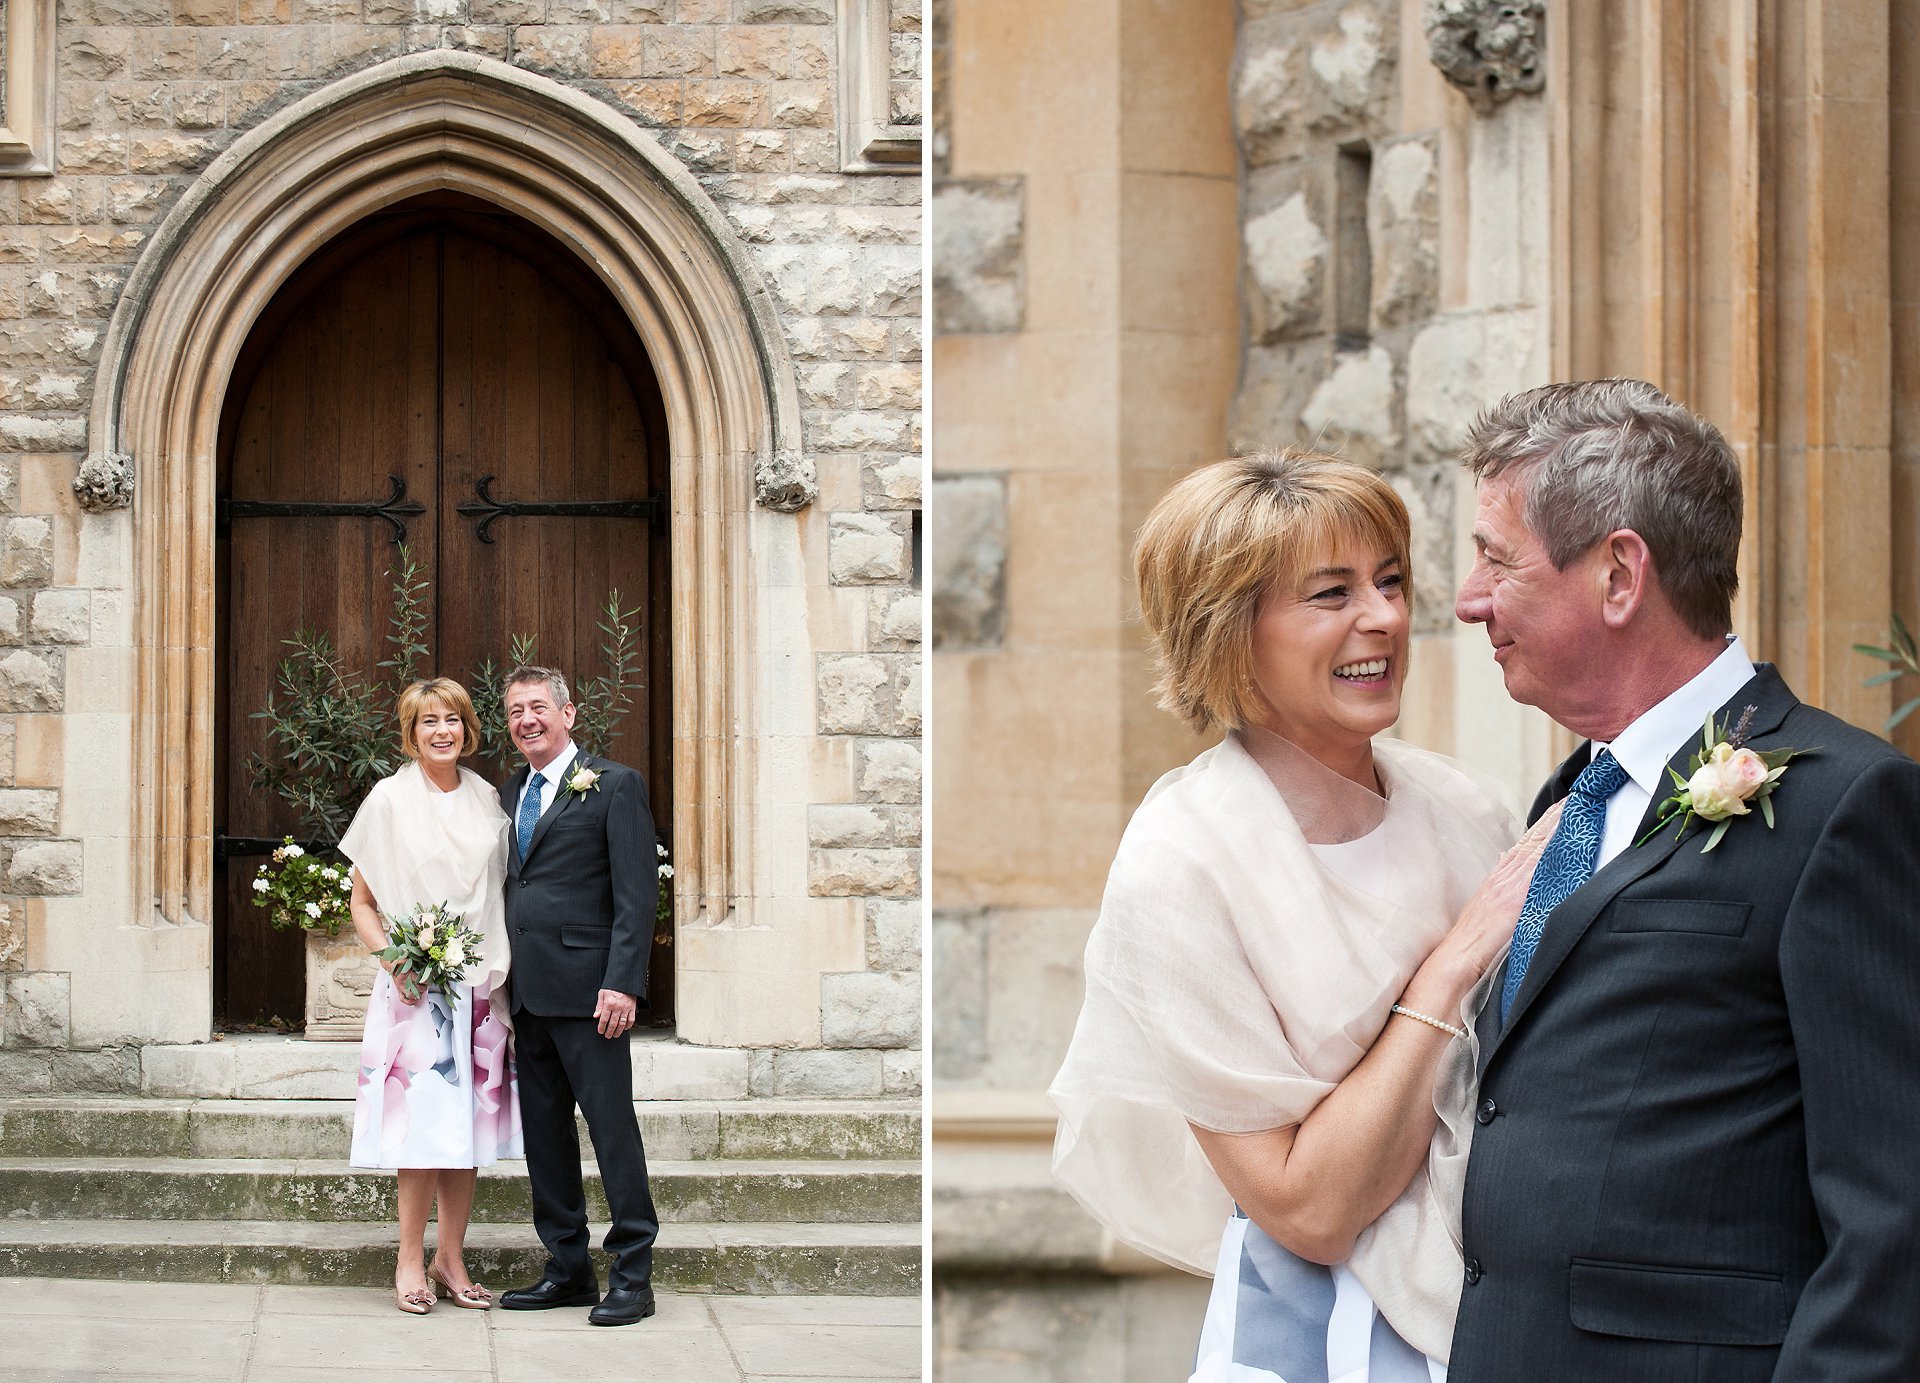 Bride & Groom photogrpahed by photographer Emma Duggan